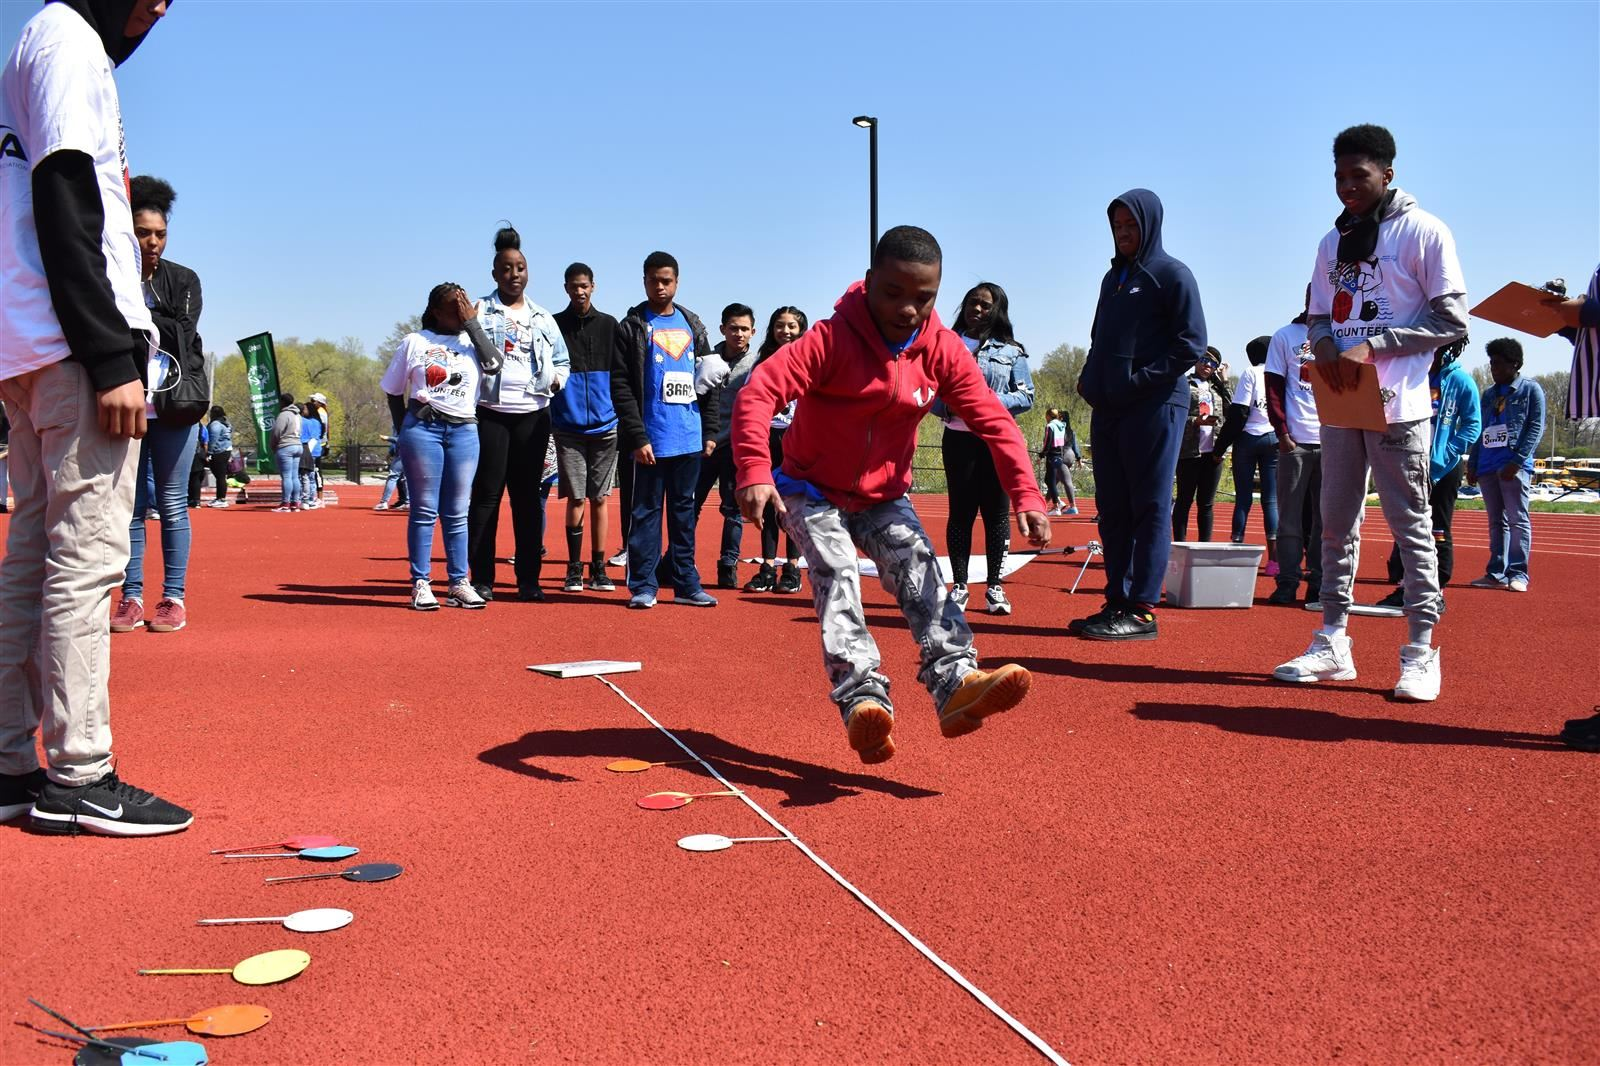 Student participating in long jump competition